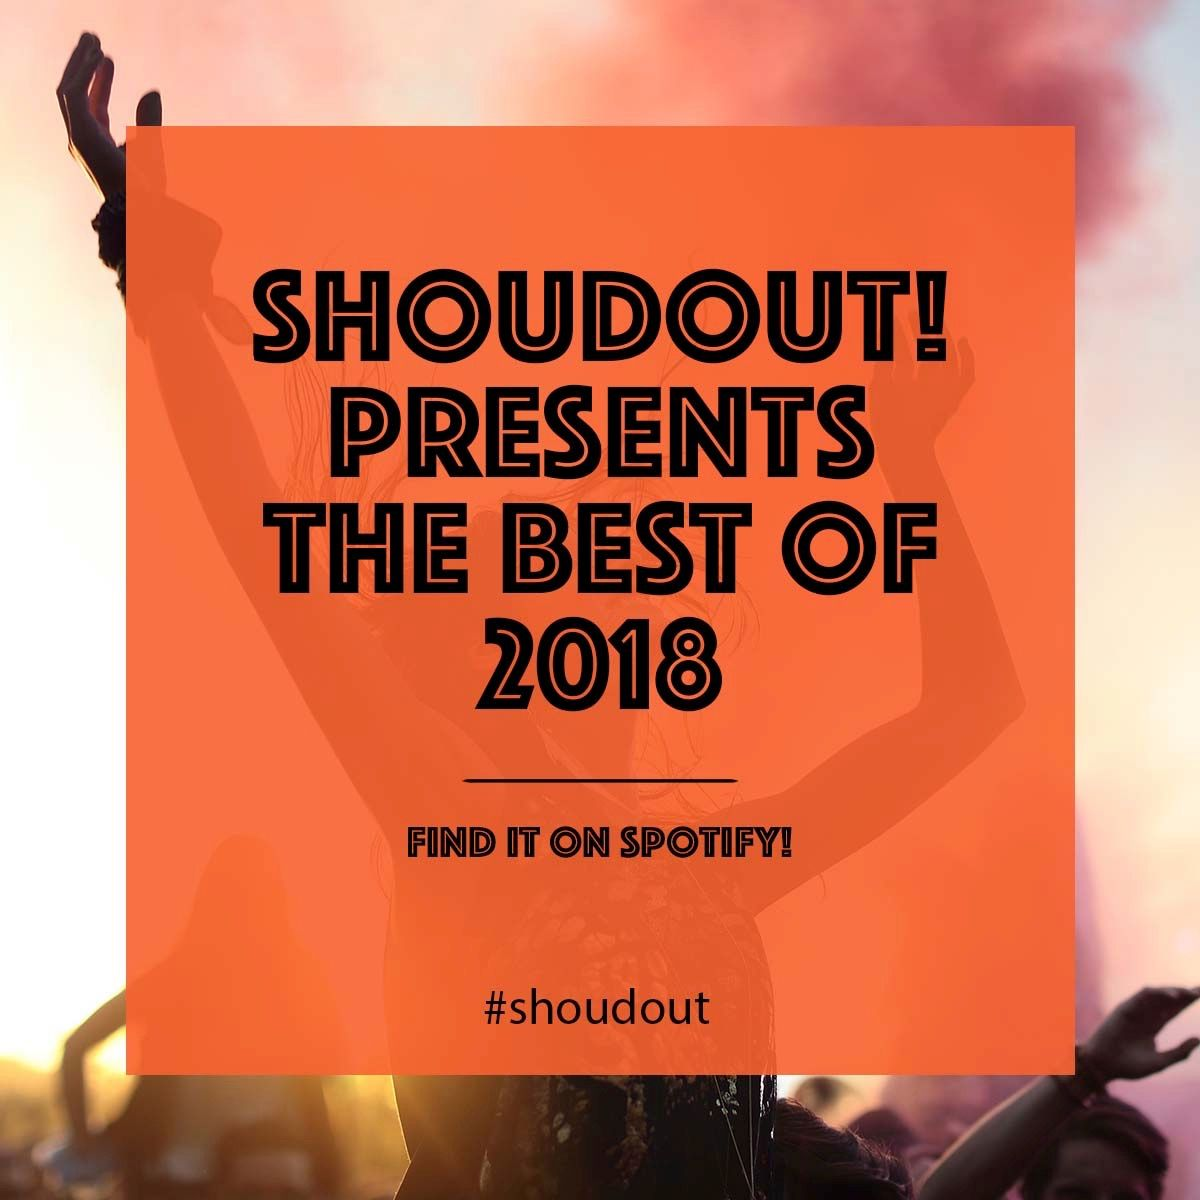 GUESS WHAT?! Shoudout now has its own playlist on Spotify